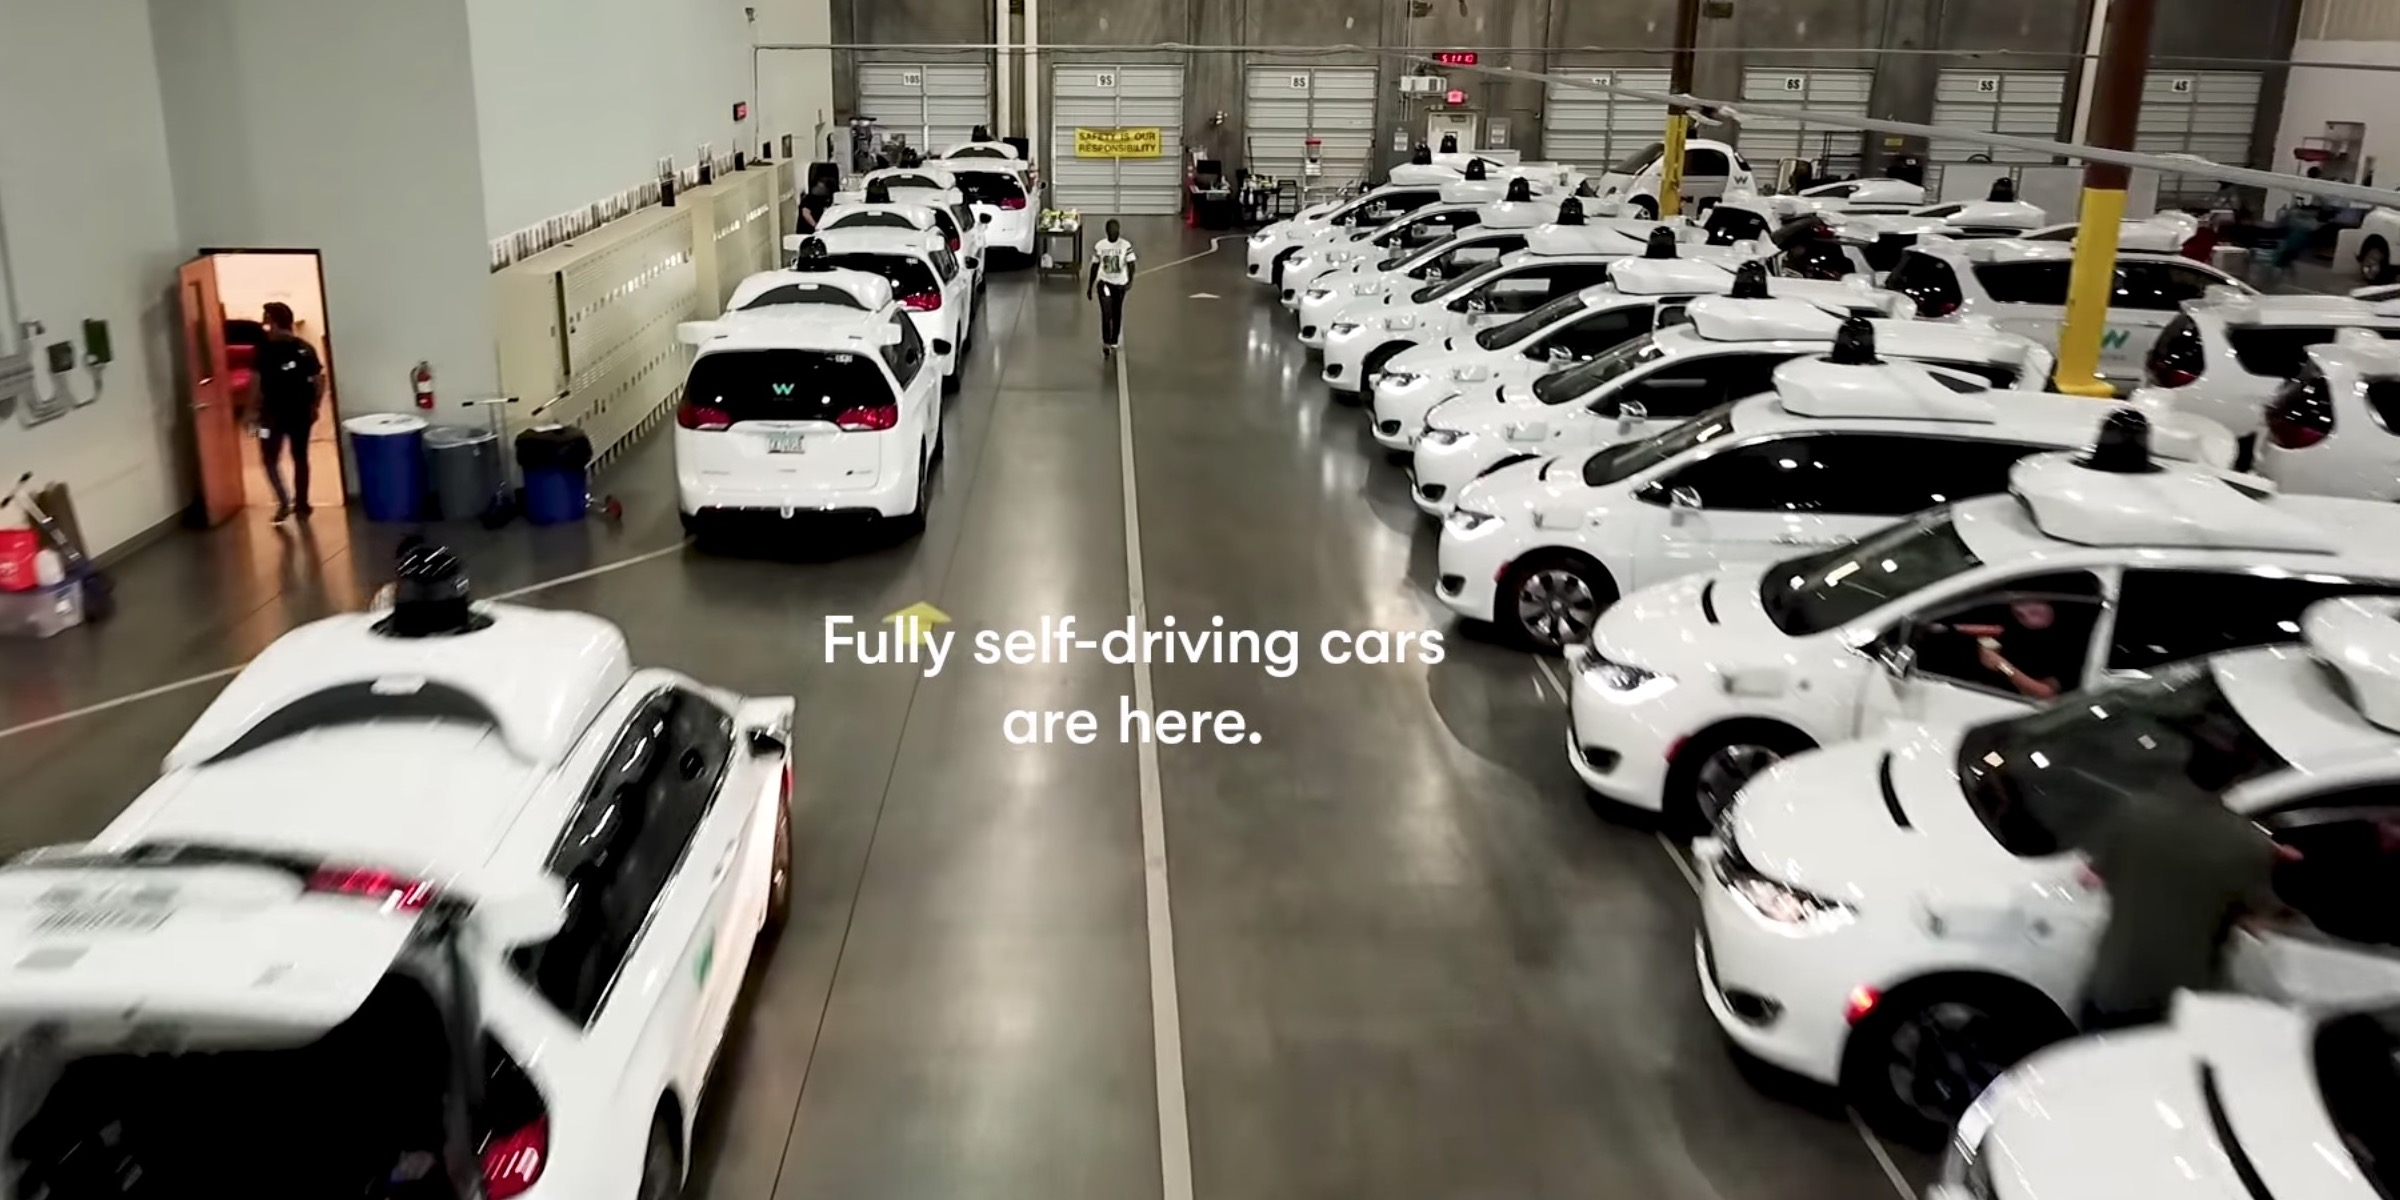 Waymo's self-driving cars are now fully autonomous, public ride service launching soon